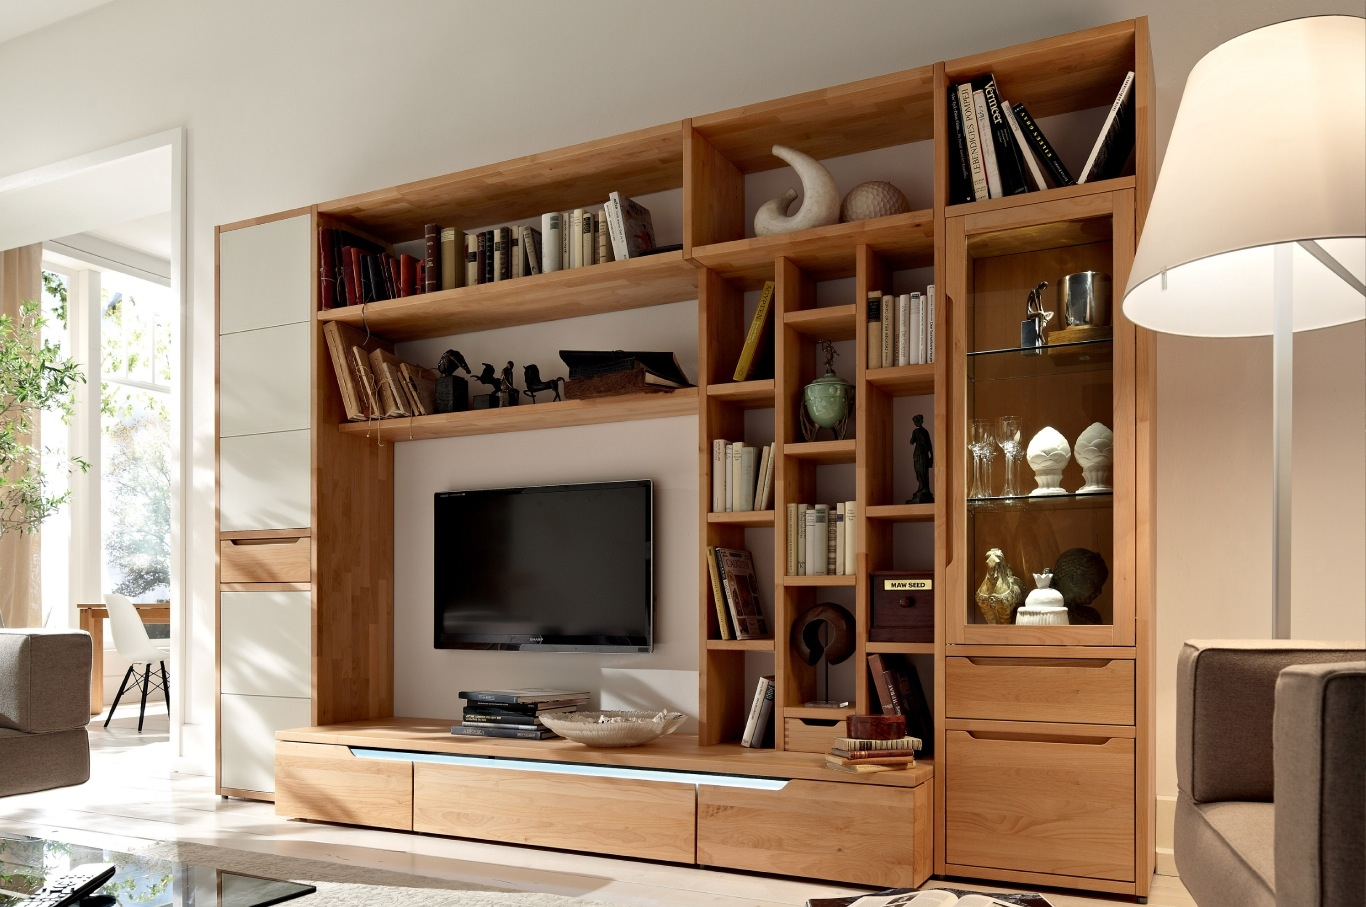 Tv Stands 10 Great Design Entertainment Centers With Bookshelves Inside Bookshelf Tv Unit (#12 of 15)